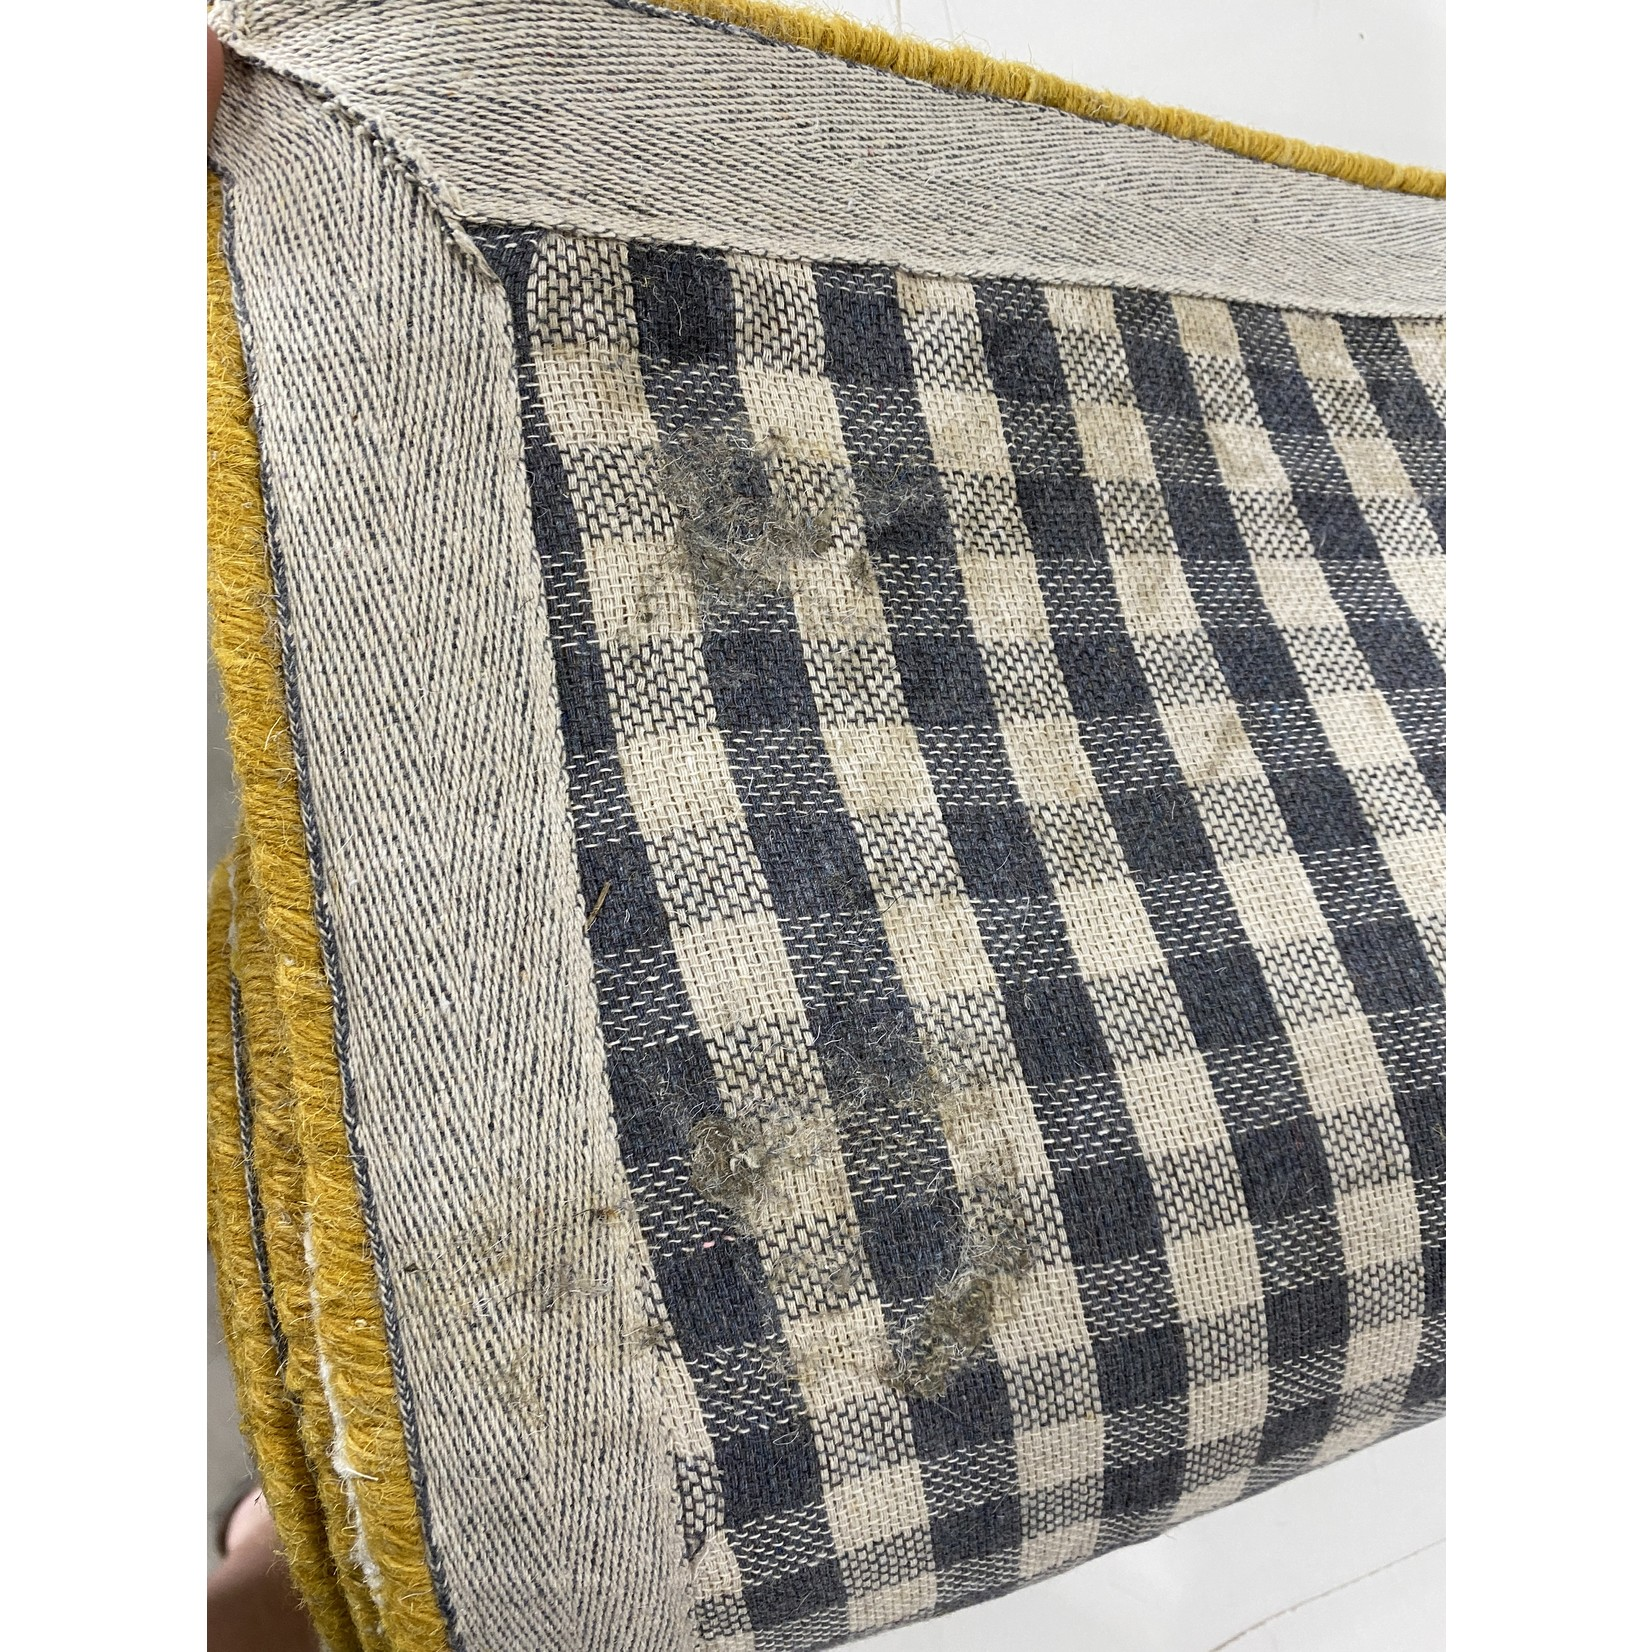 *6' x 9' - Whitchurch Wool Gold/Ivory Area Rug - Dirt on back